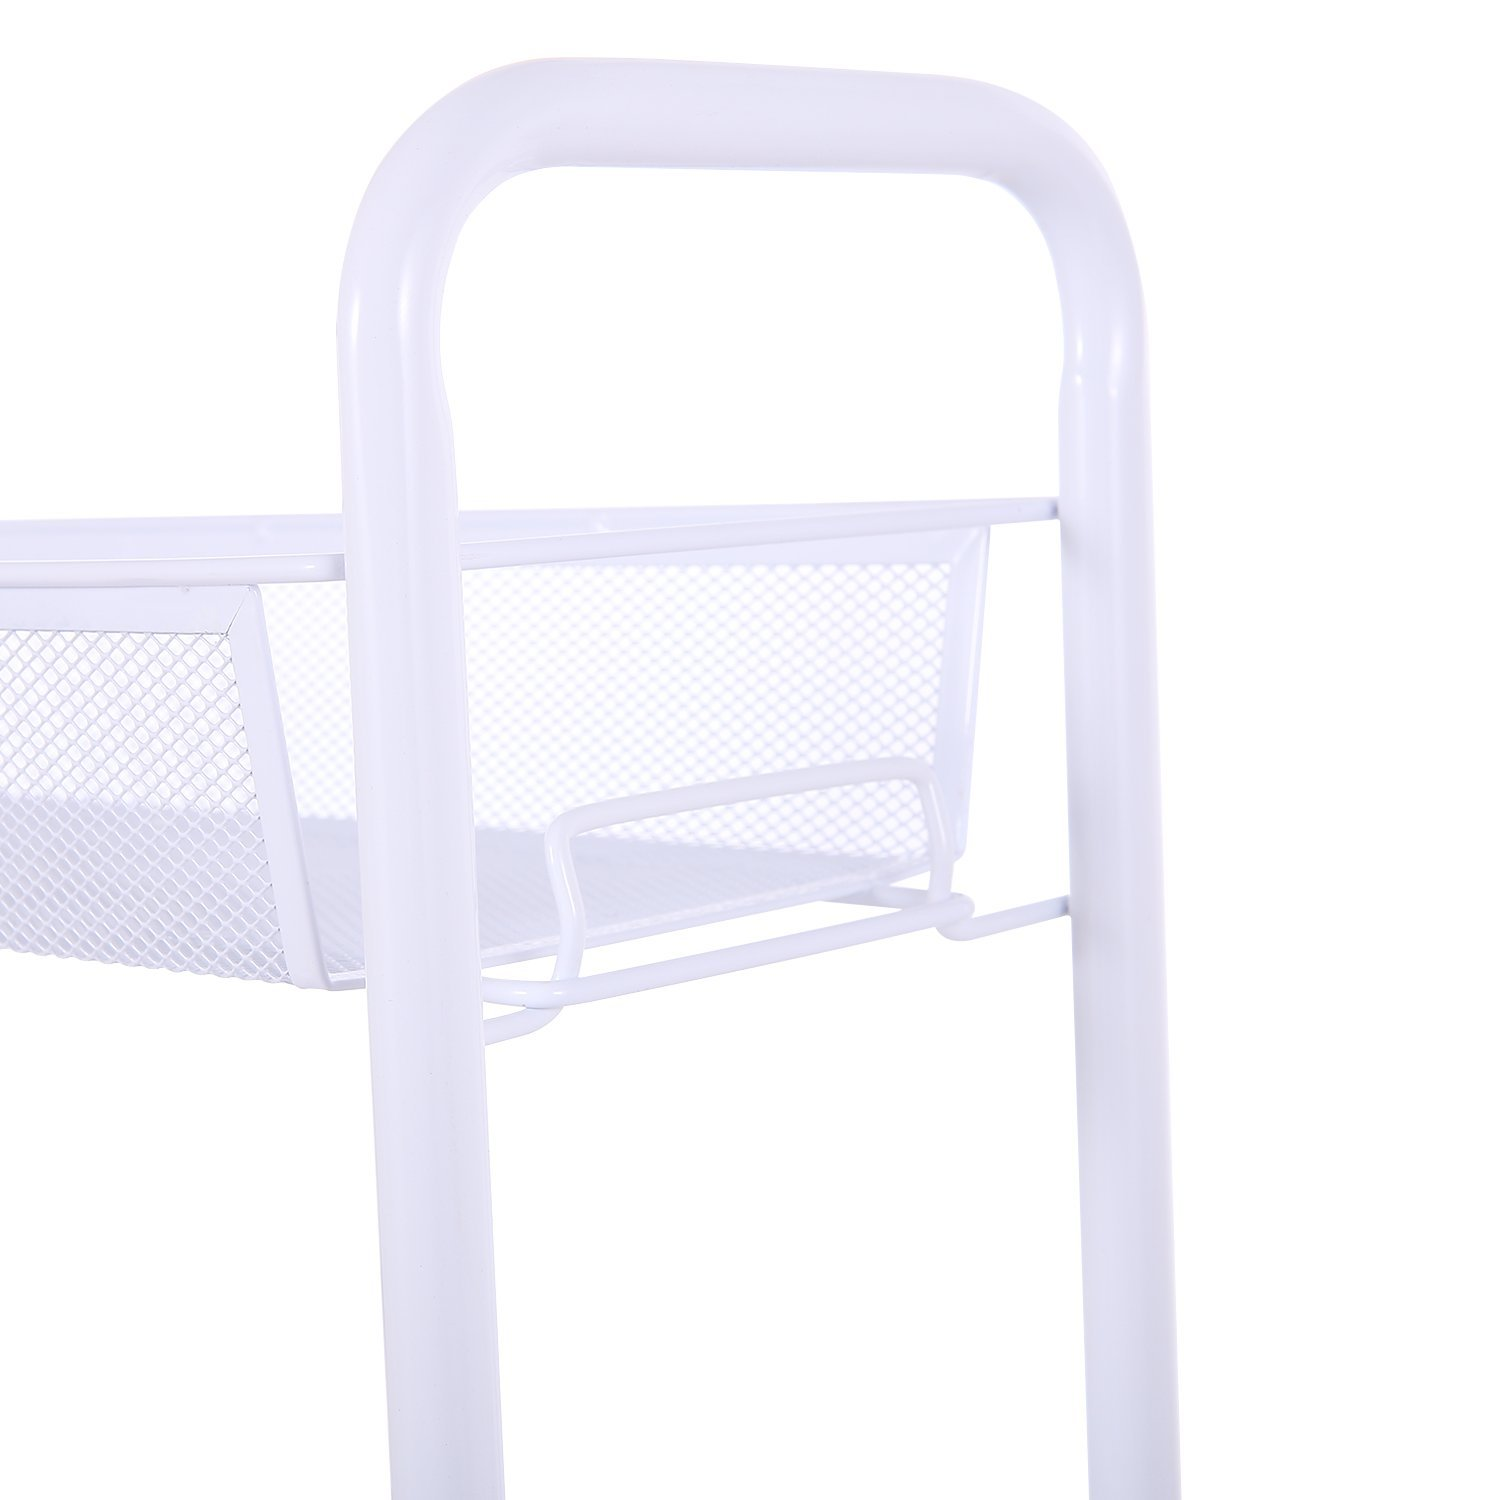 Amazon.com: 3 Tier Slim Storage Cart   Slide Out Metal Mesh Rolling Tower  For Narrow Space Organization Of Laundry, Bathroom, Kitchen, Pet Closet    White ...